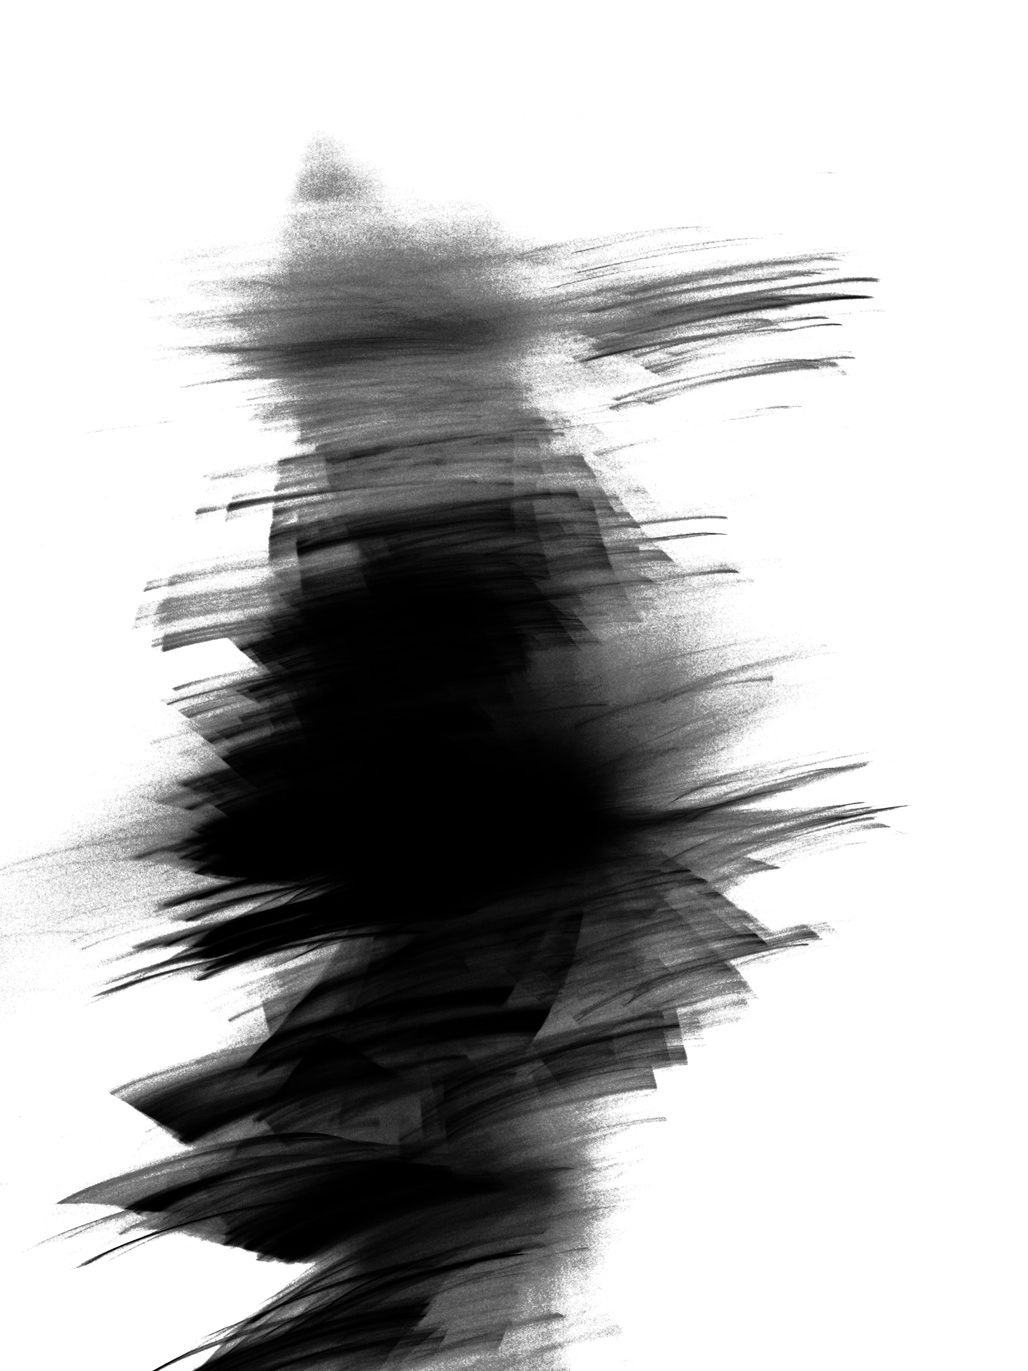 Untitled, Feathers, 2011, Black and White Abstract Photography, Shirine Gill